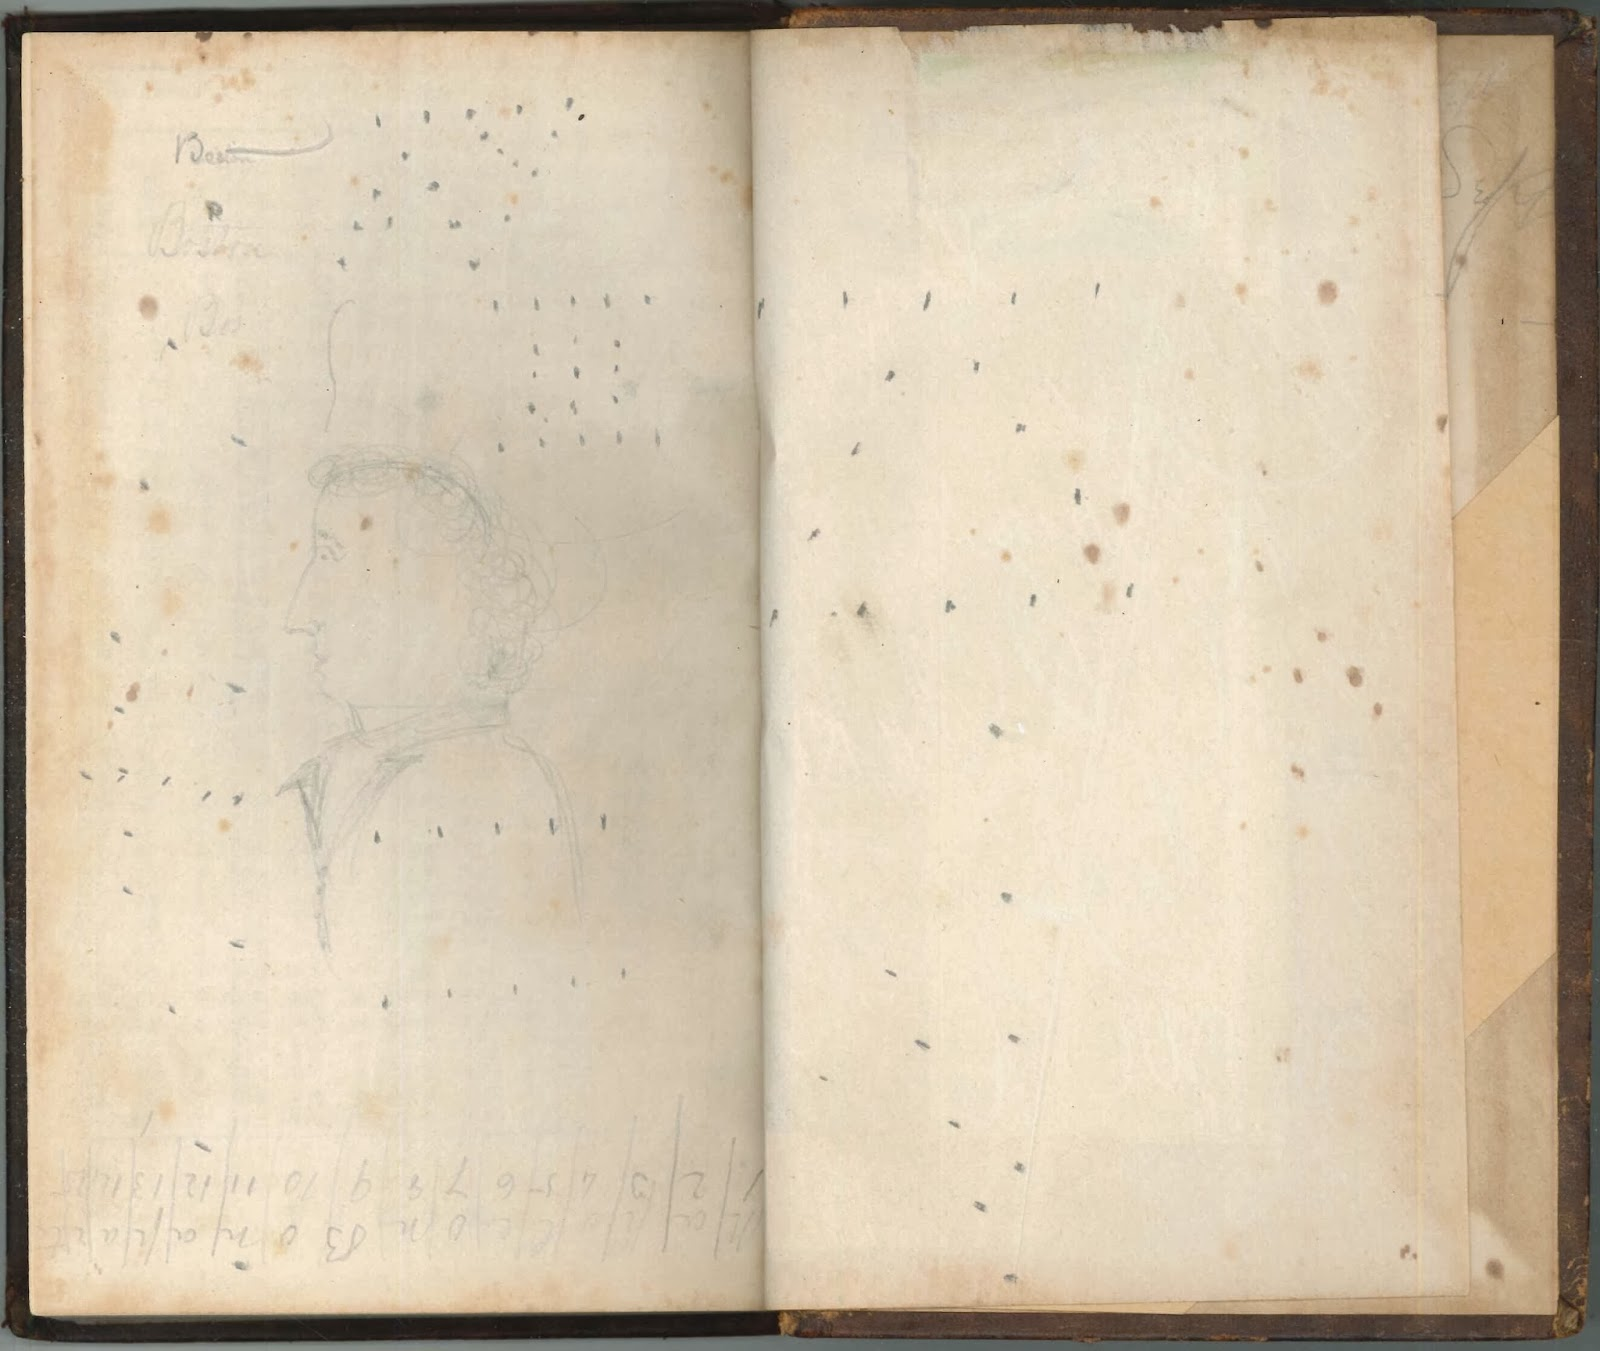 An open book. The visible pages are blank except for a series of dots.